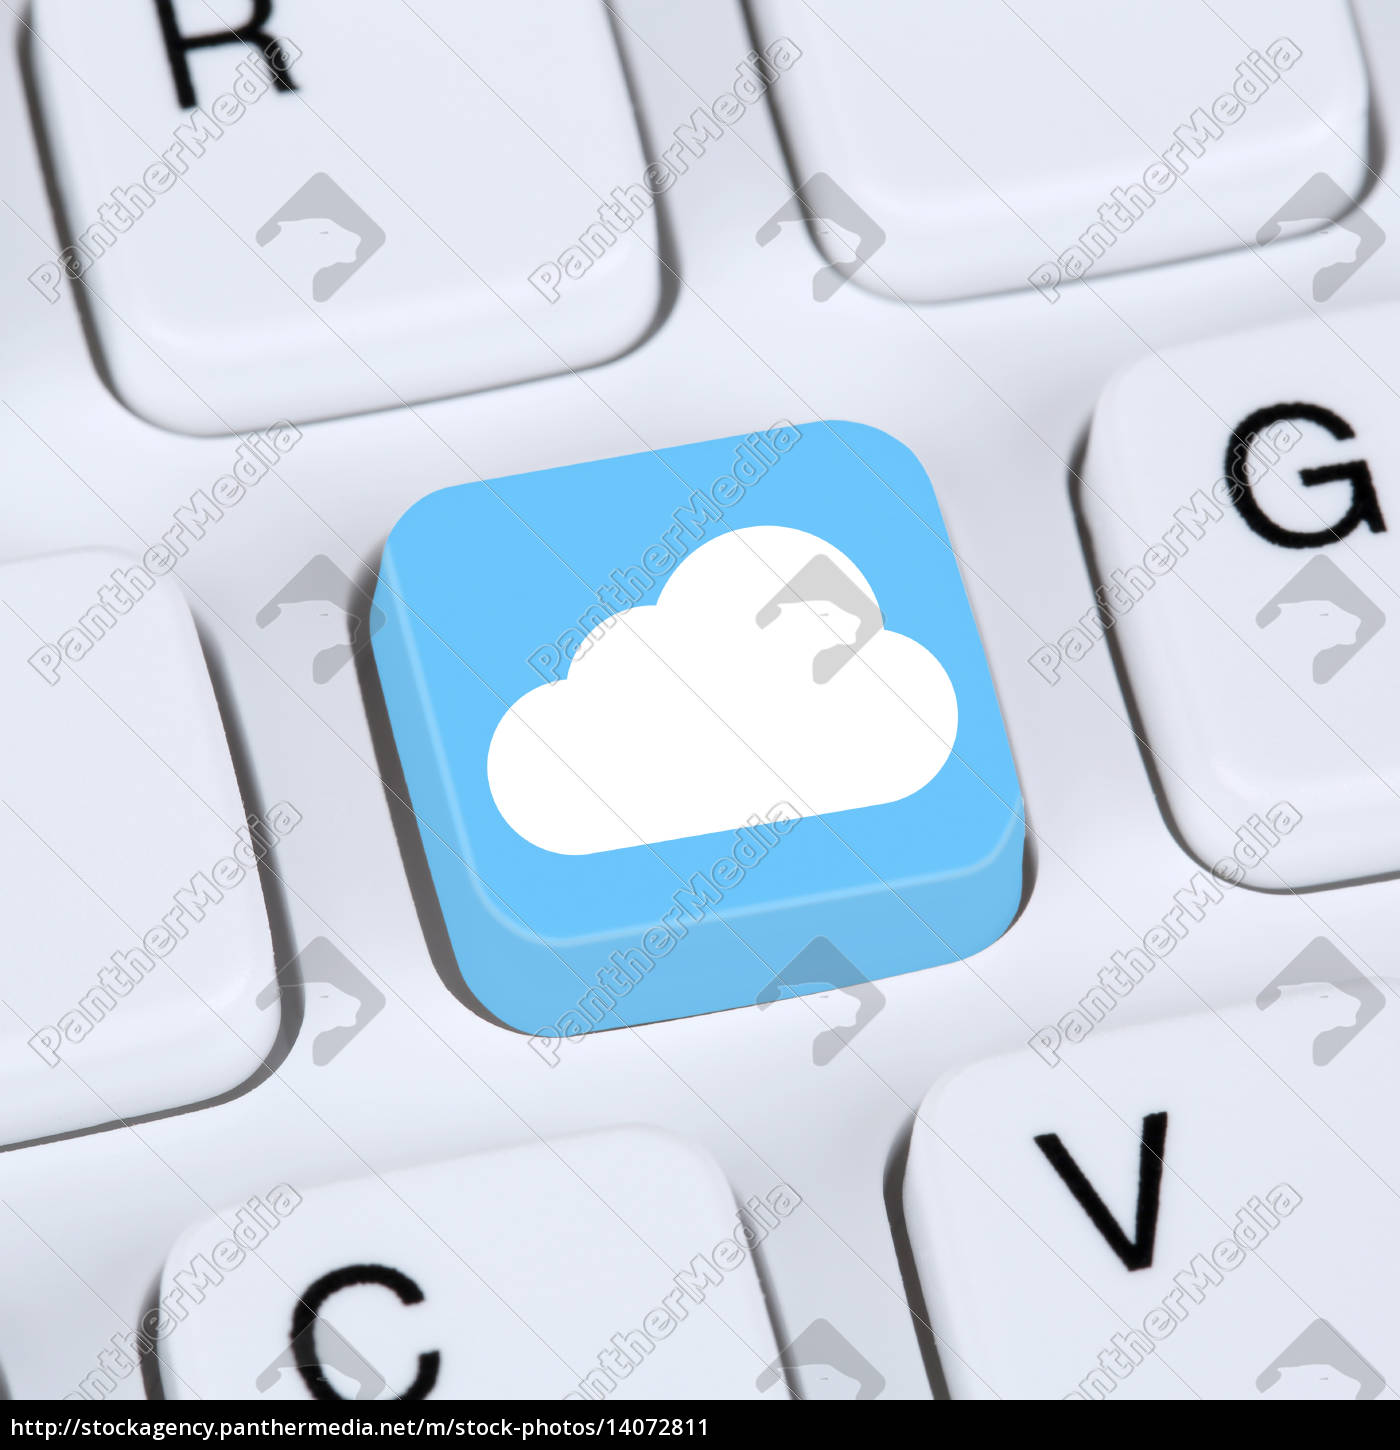 internet, concept, symbol, cloud, computing, online - 14072811